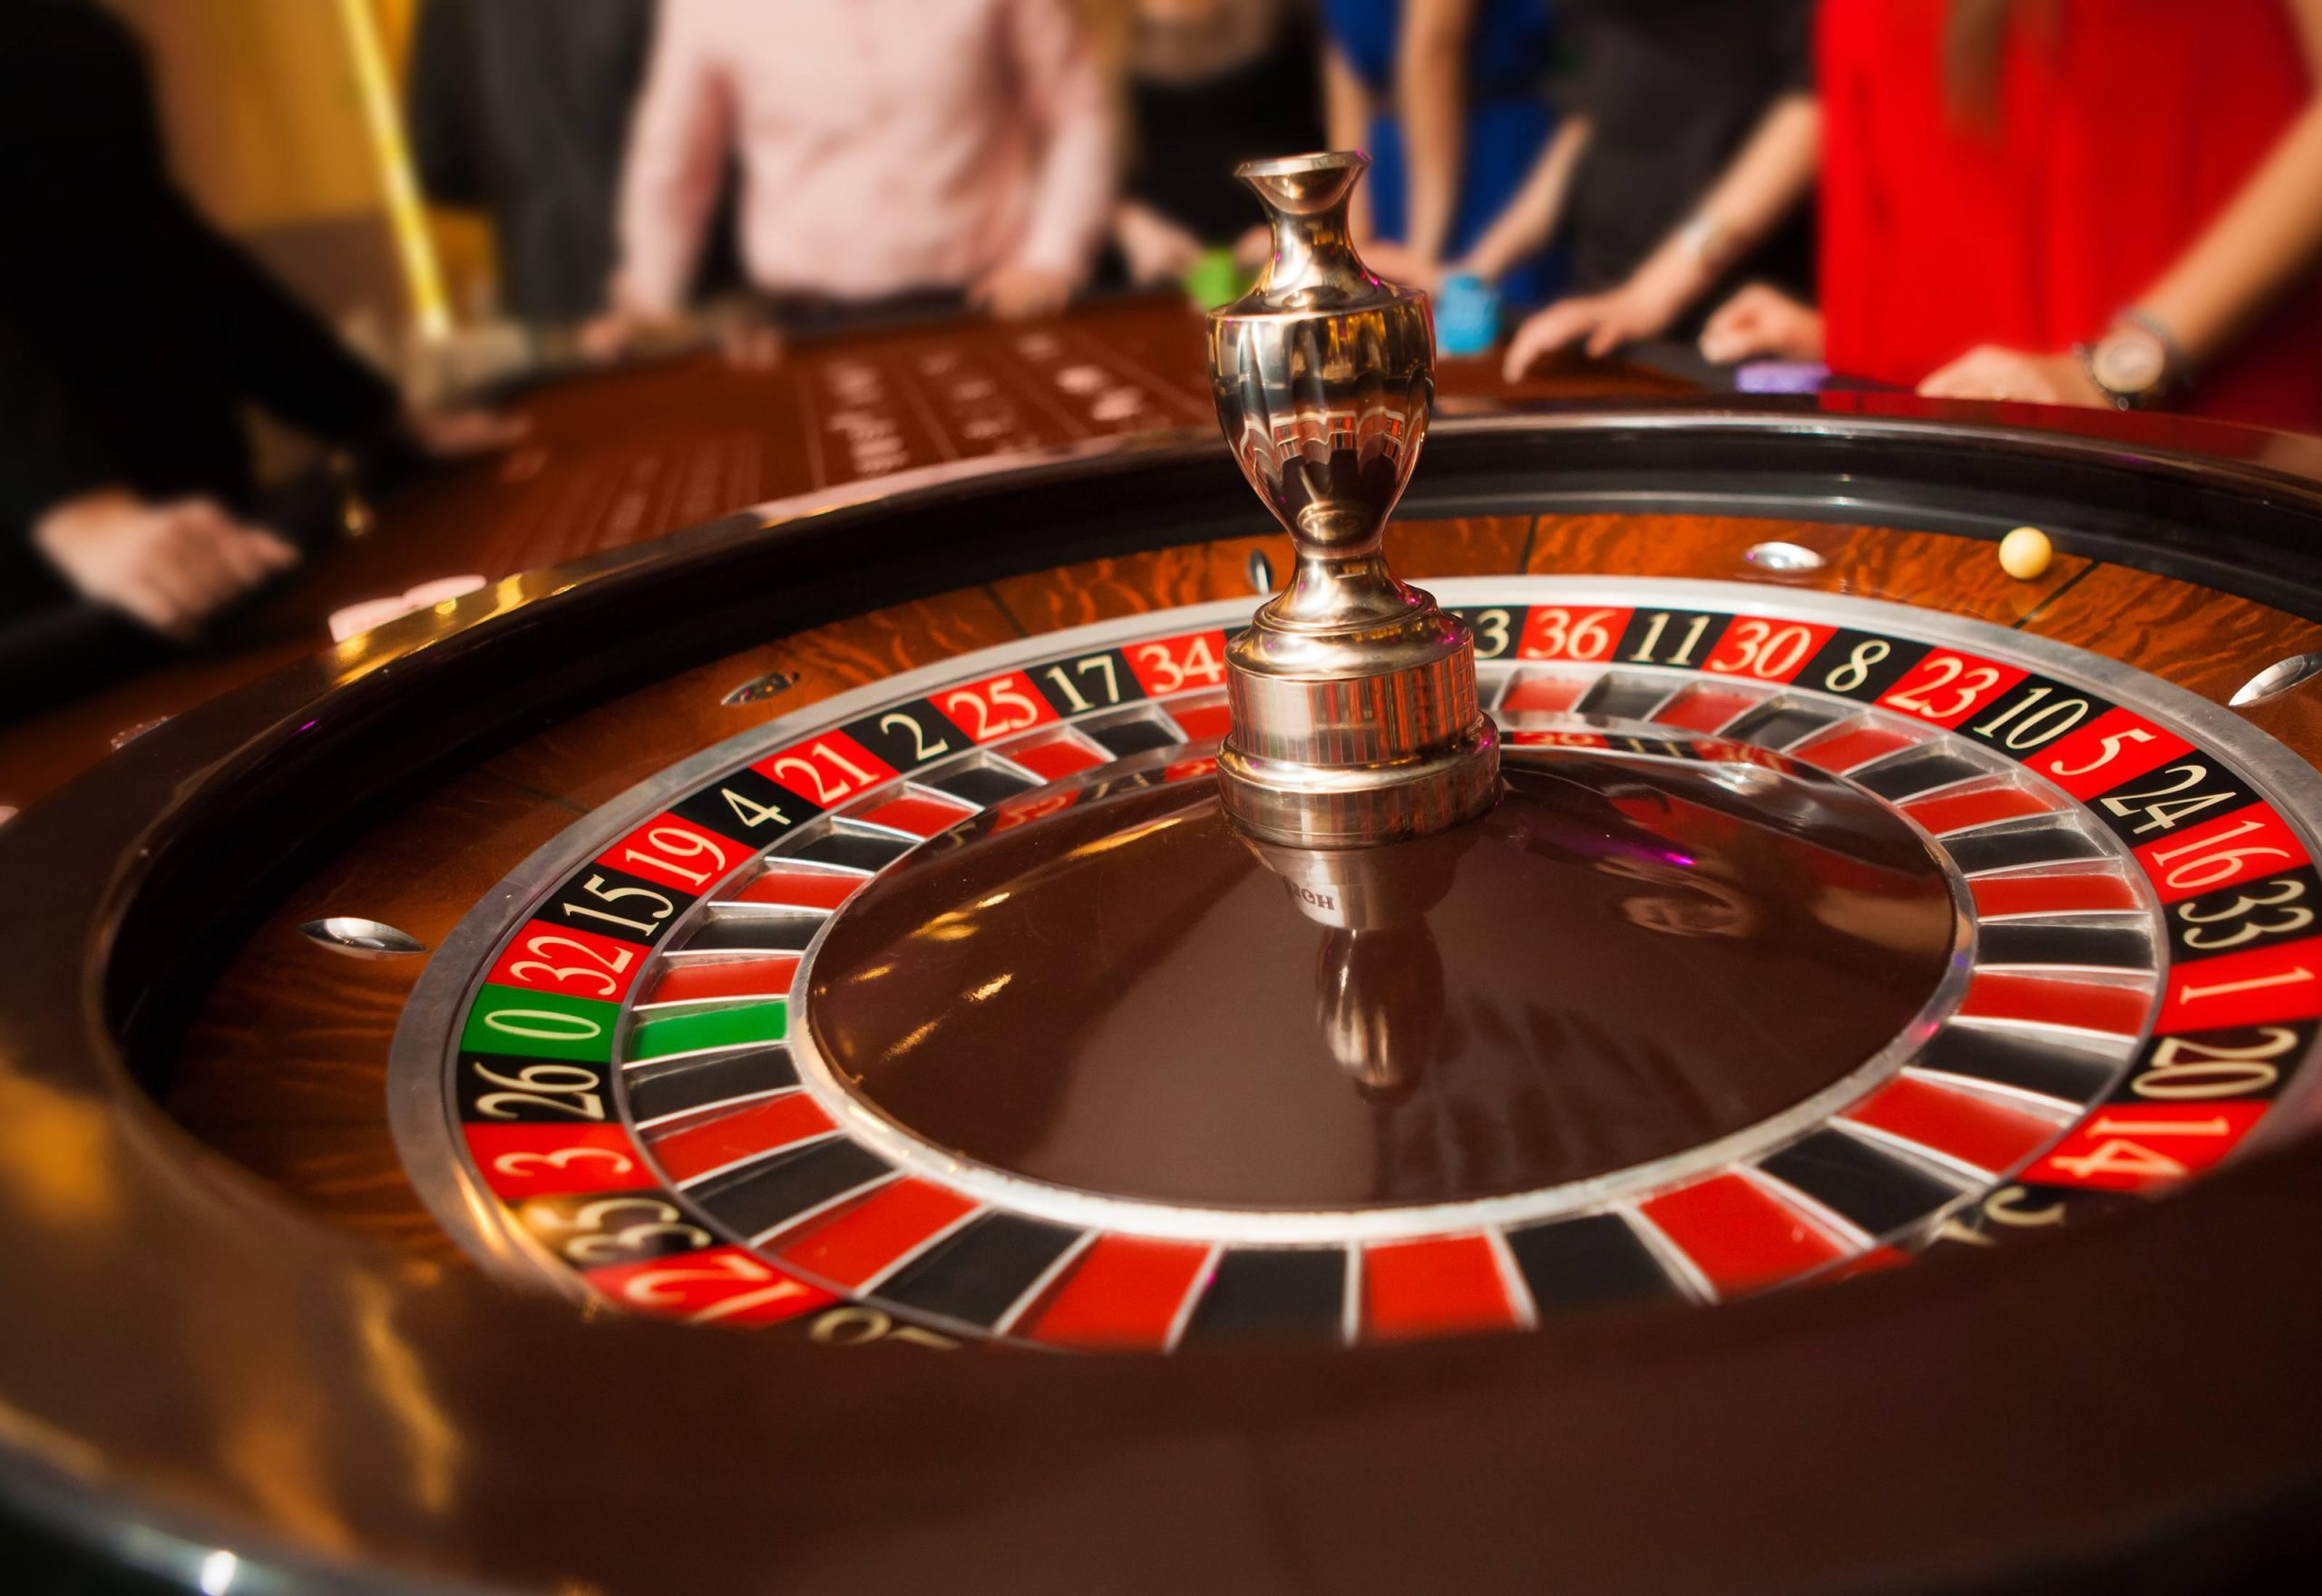 How to play live casino on Sbobet via Android